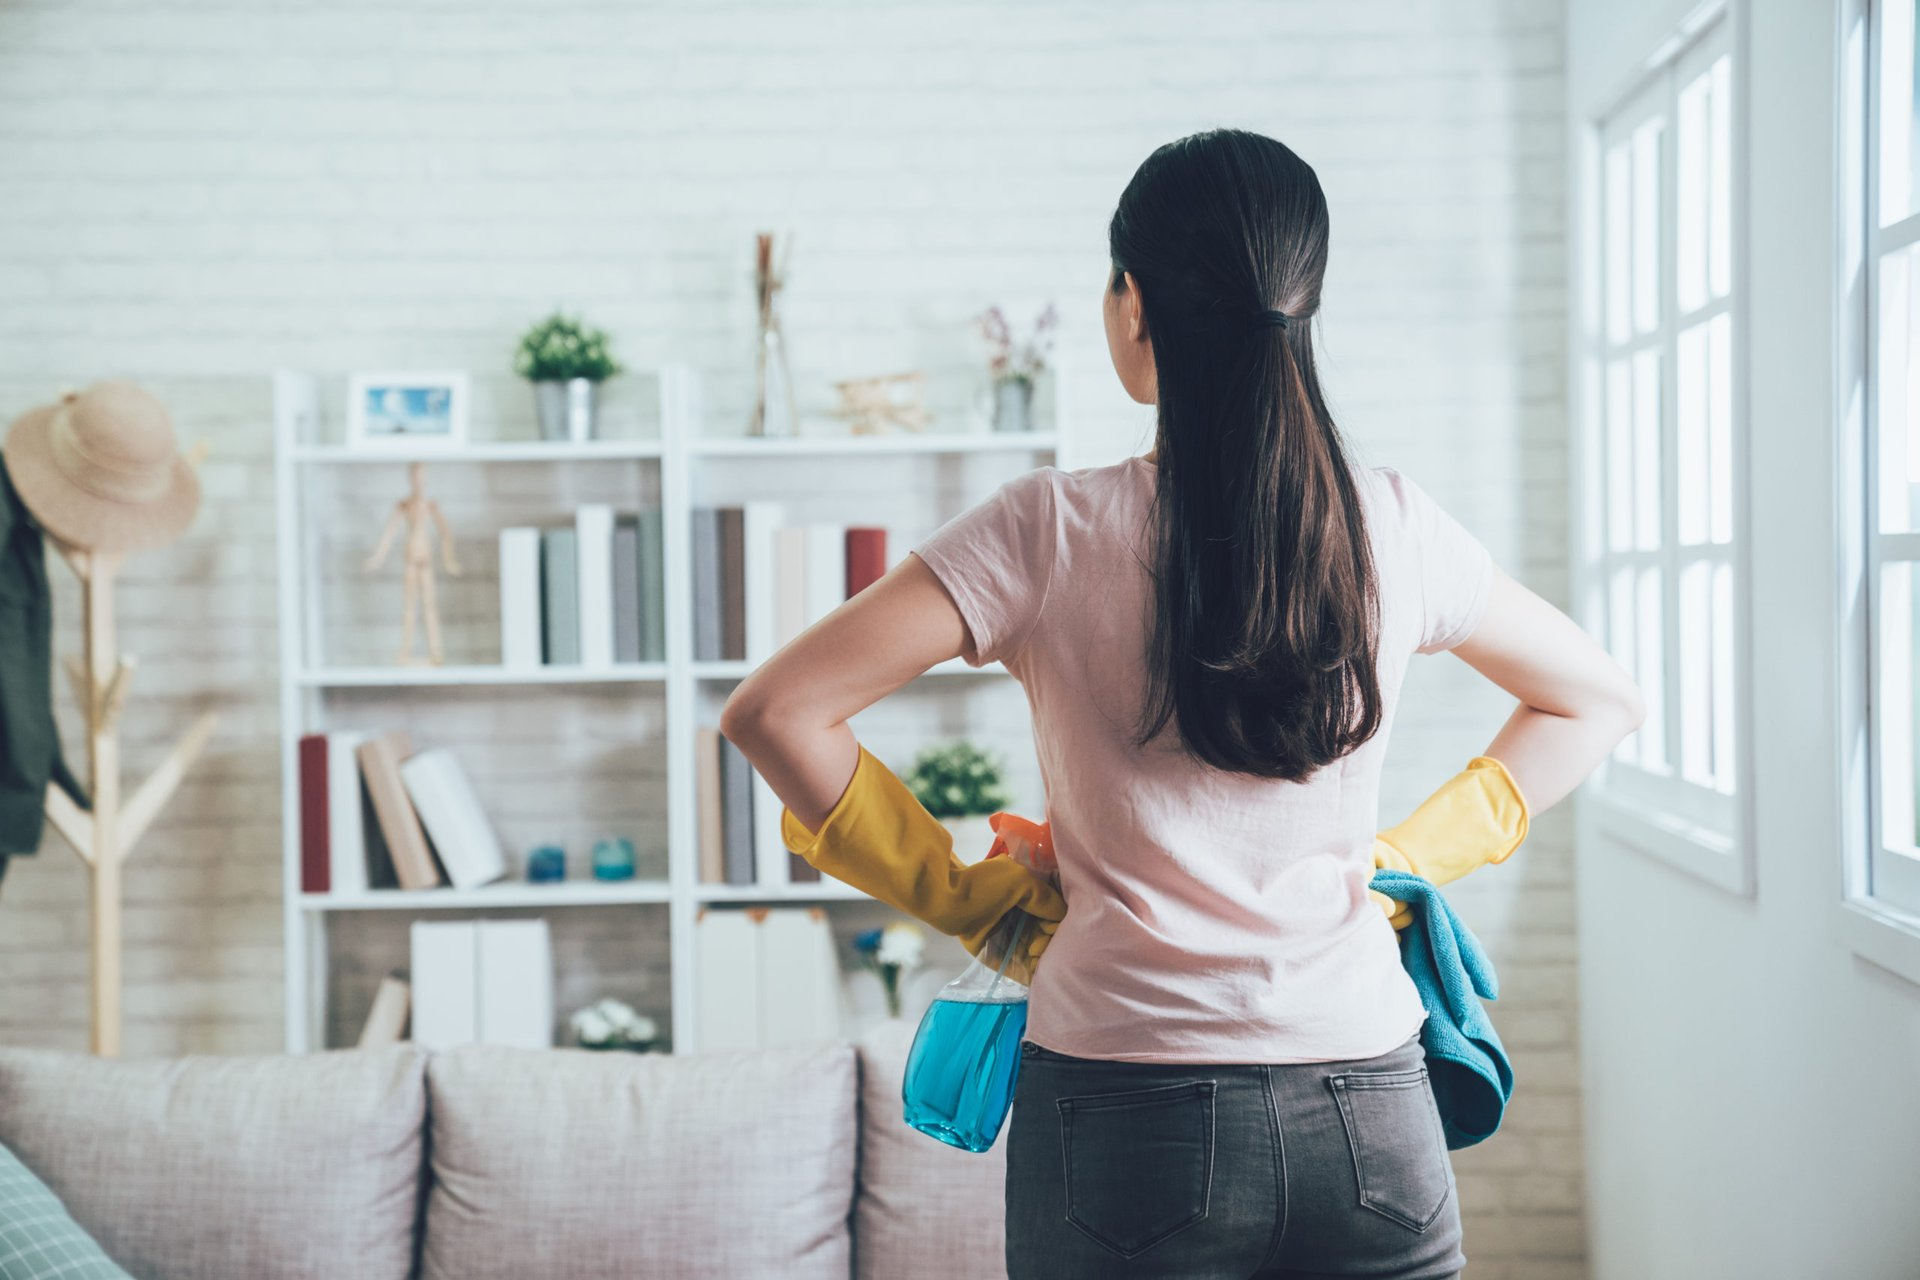 woman with cleaner bottle and gloves